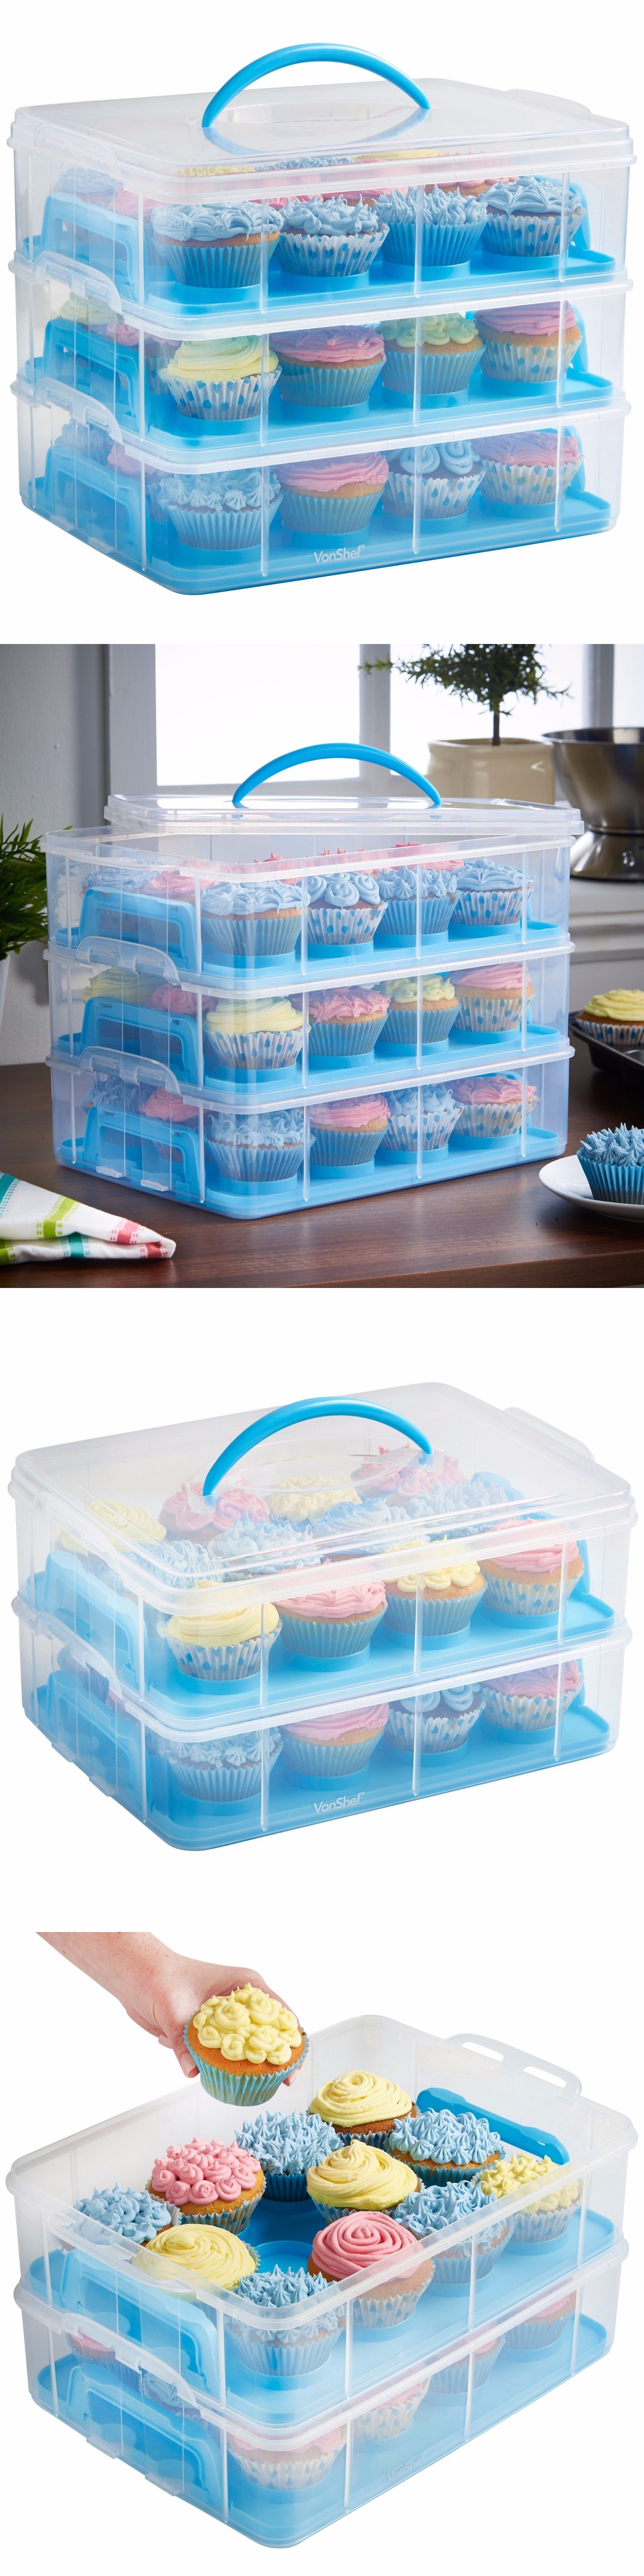 36 Cupcake Carrier Entrancing Food Storage Containers 20655 Vonshef Pink 3 Tier Locking 36 Inspiration